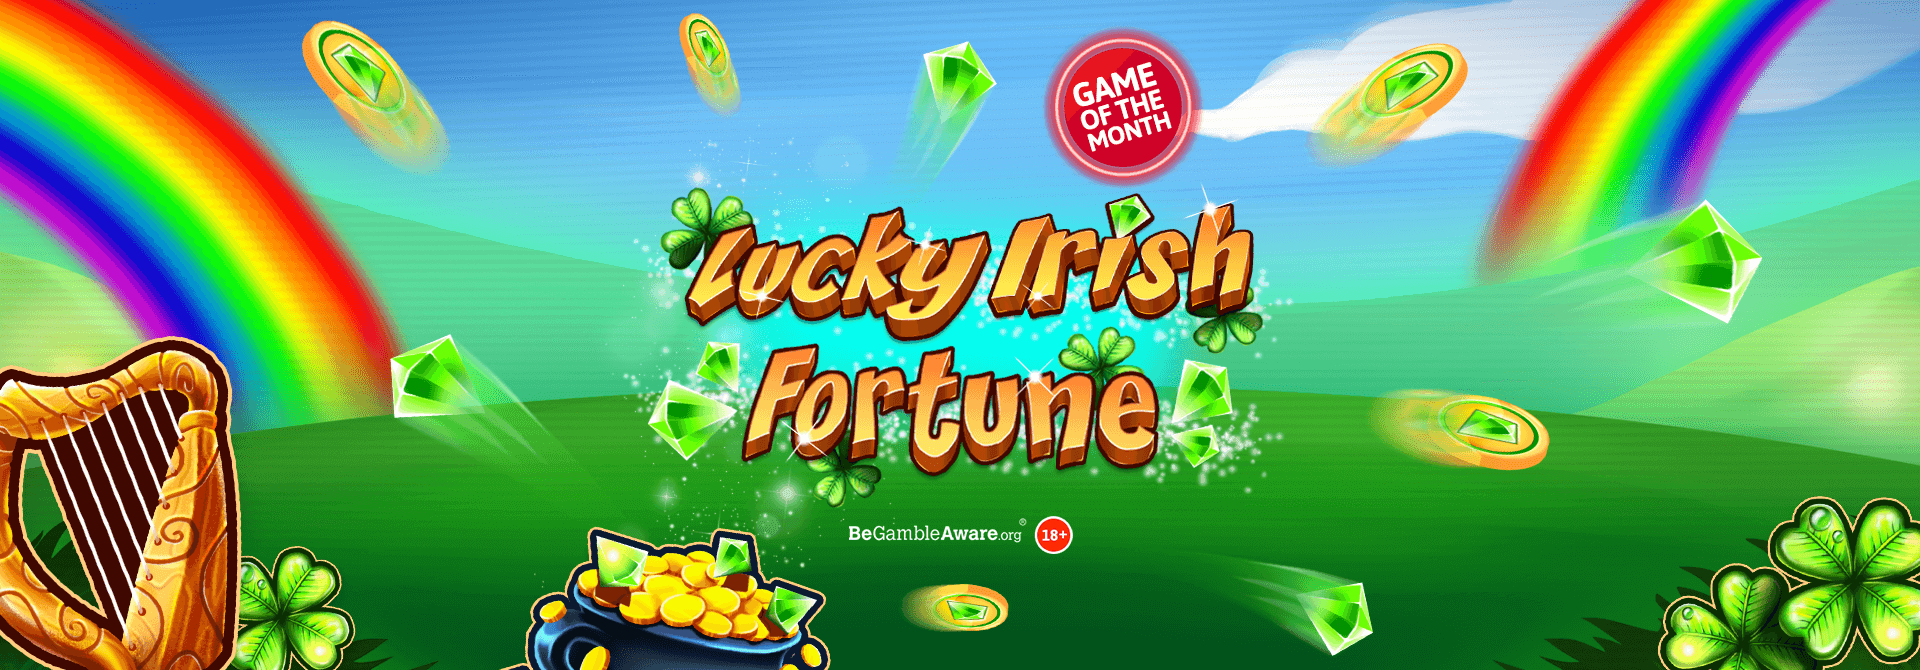 Prepare for an Irish adventure on the reels of Lucky Irish Fortune online slots!